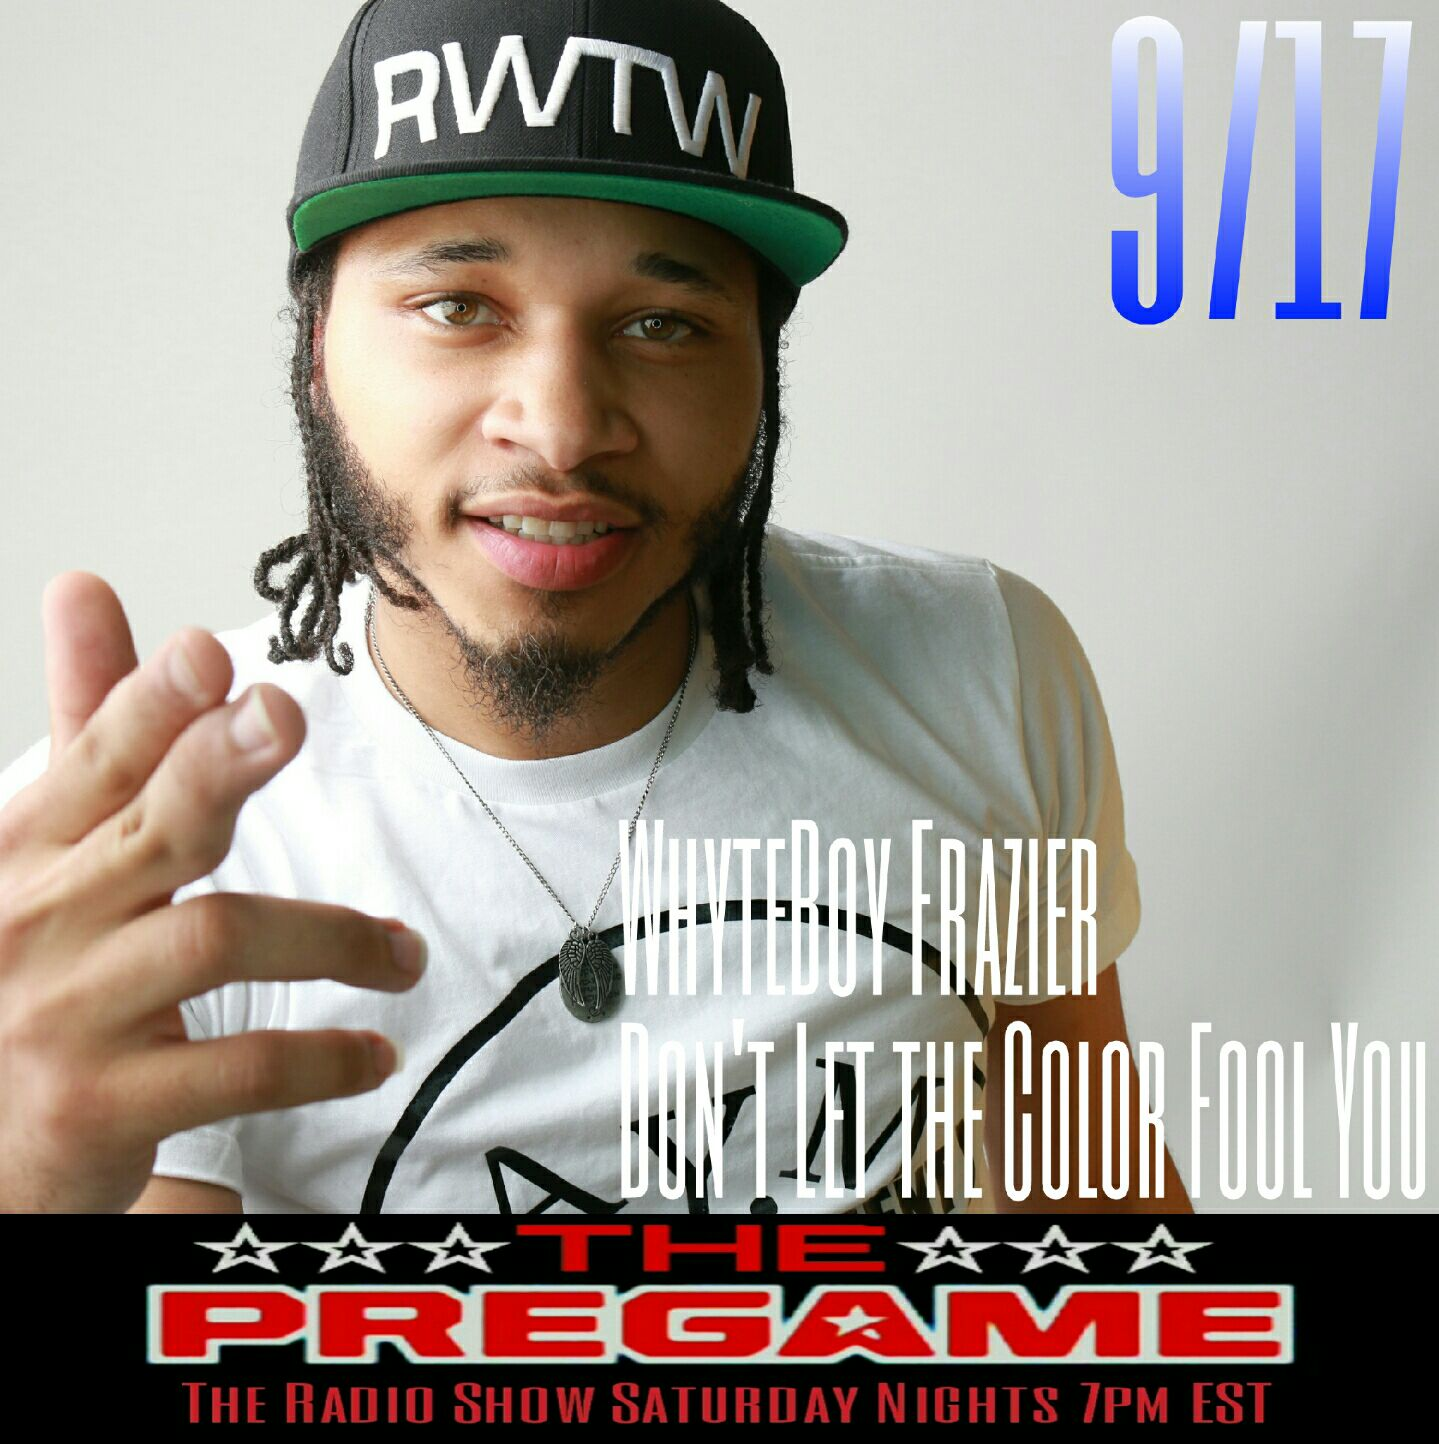 The PreGame Show 9/17/16: WhyteBoy Fraizer and Hellboy